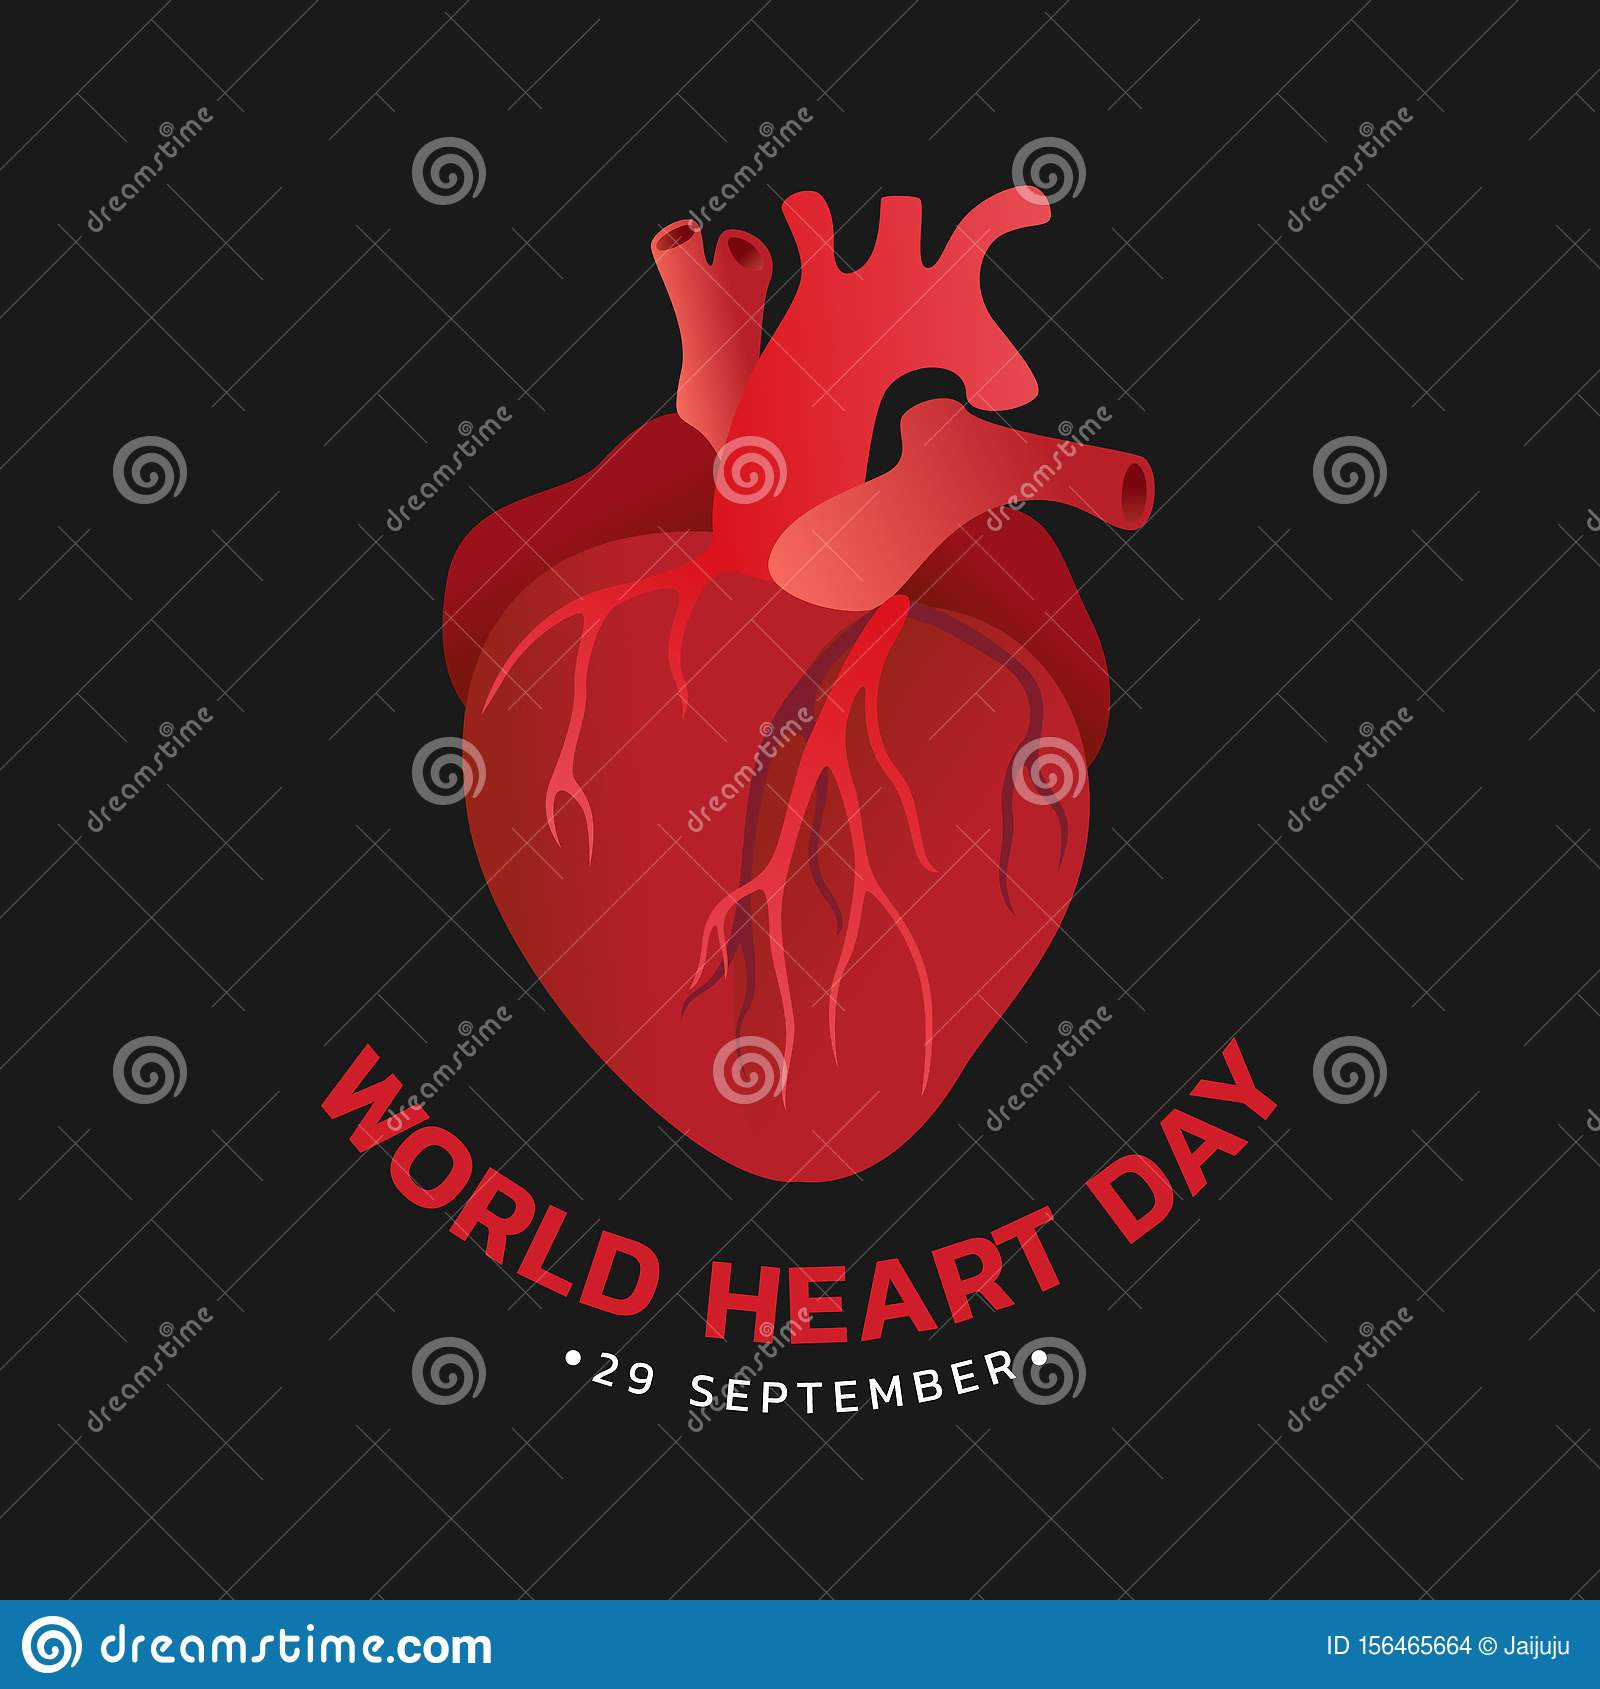 World heart day with red human heart sign on black background vector design